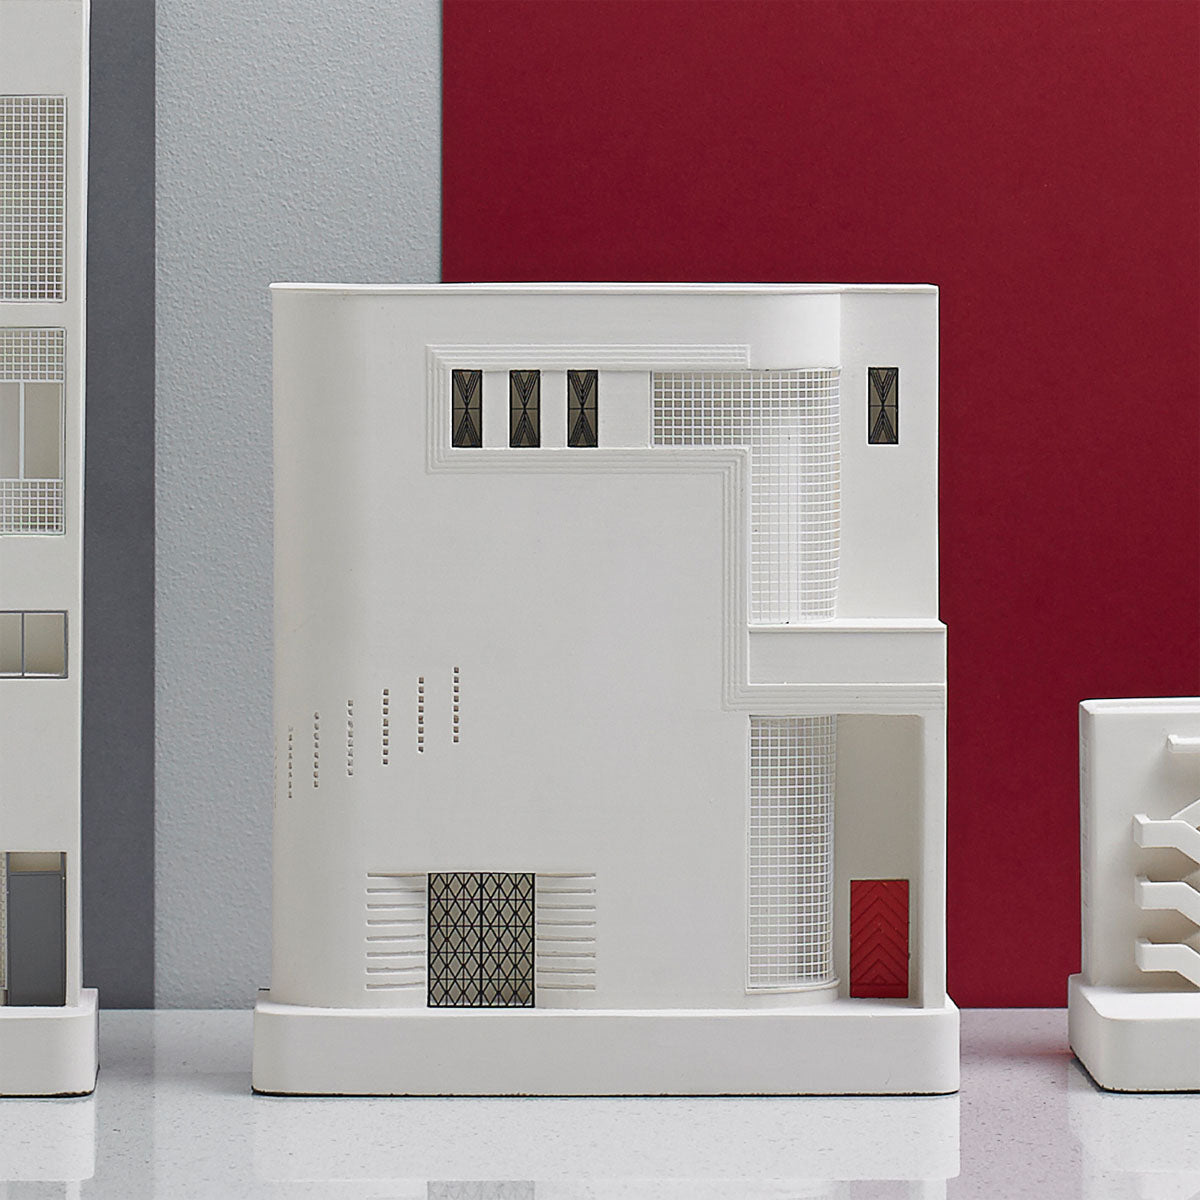 Fisher Apartments Architectural Model